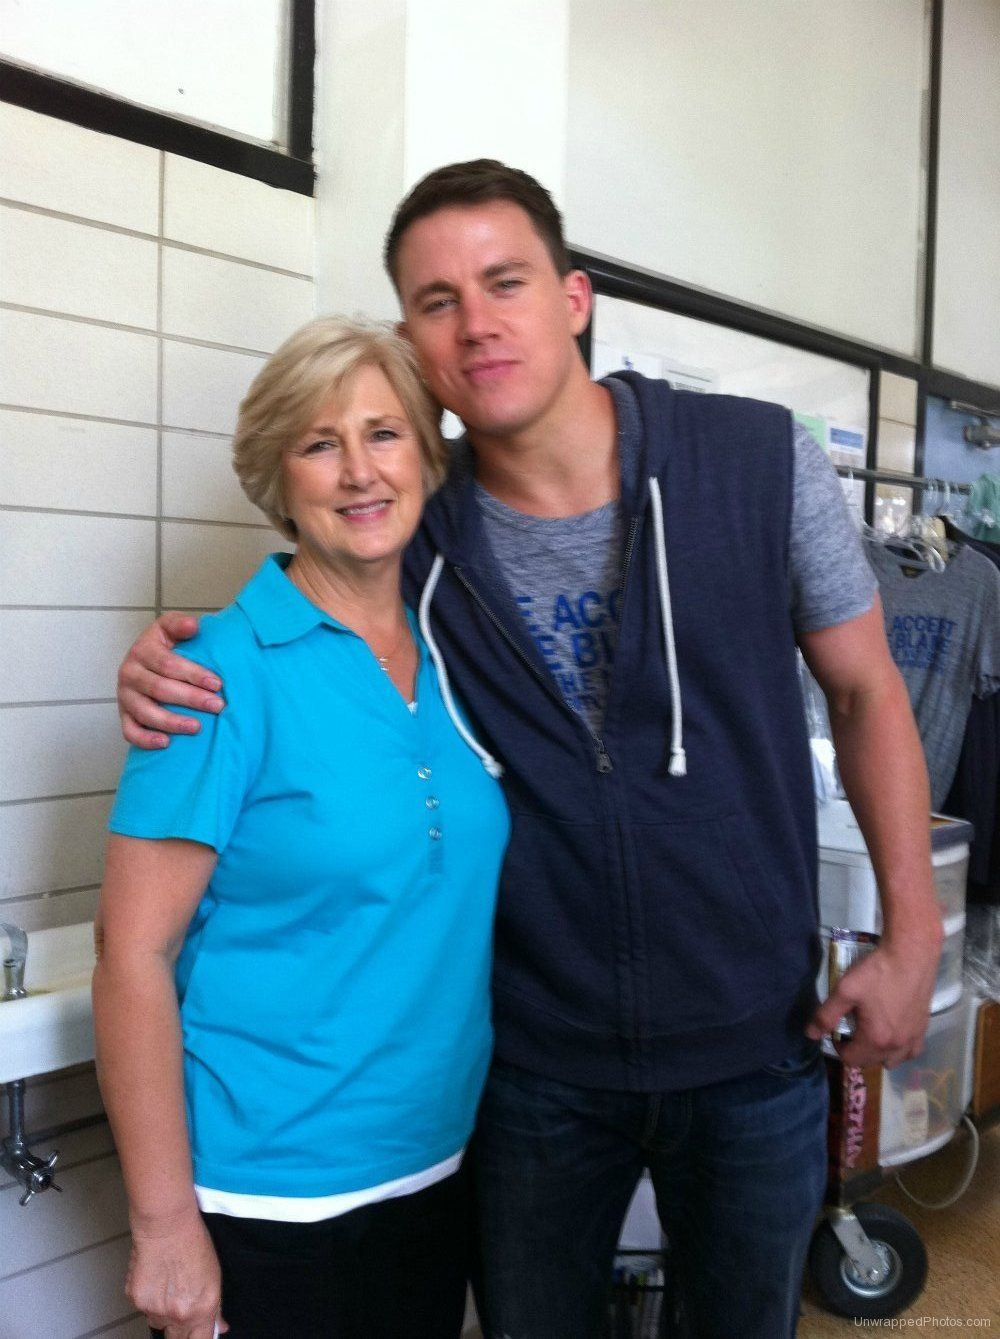 9b6c83fb Channing Tatum with his mom on the set of 21 Jumpstreet. So sweet ...